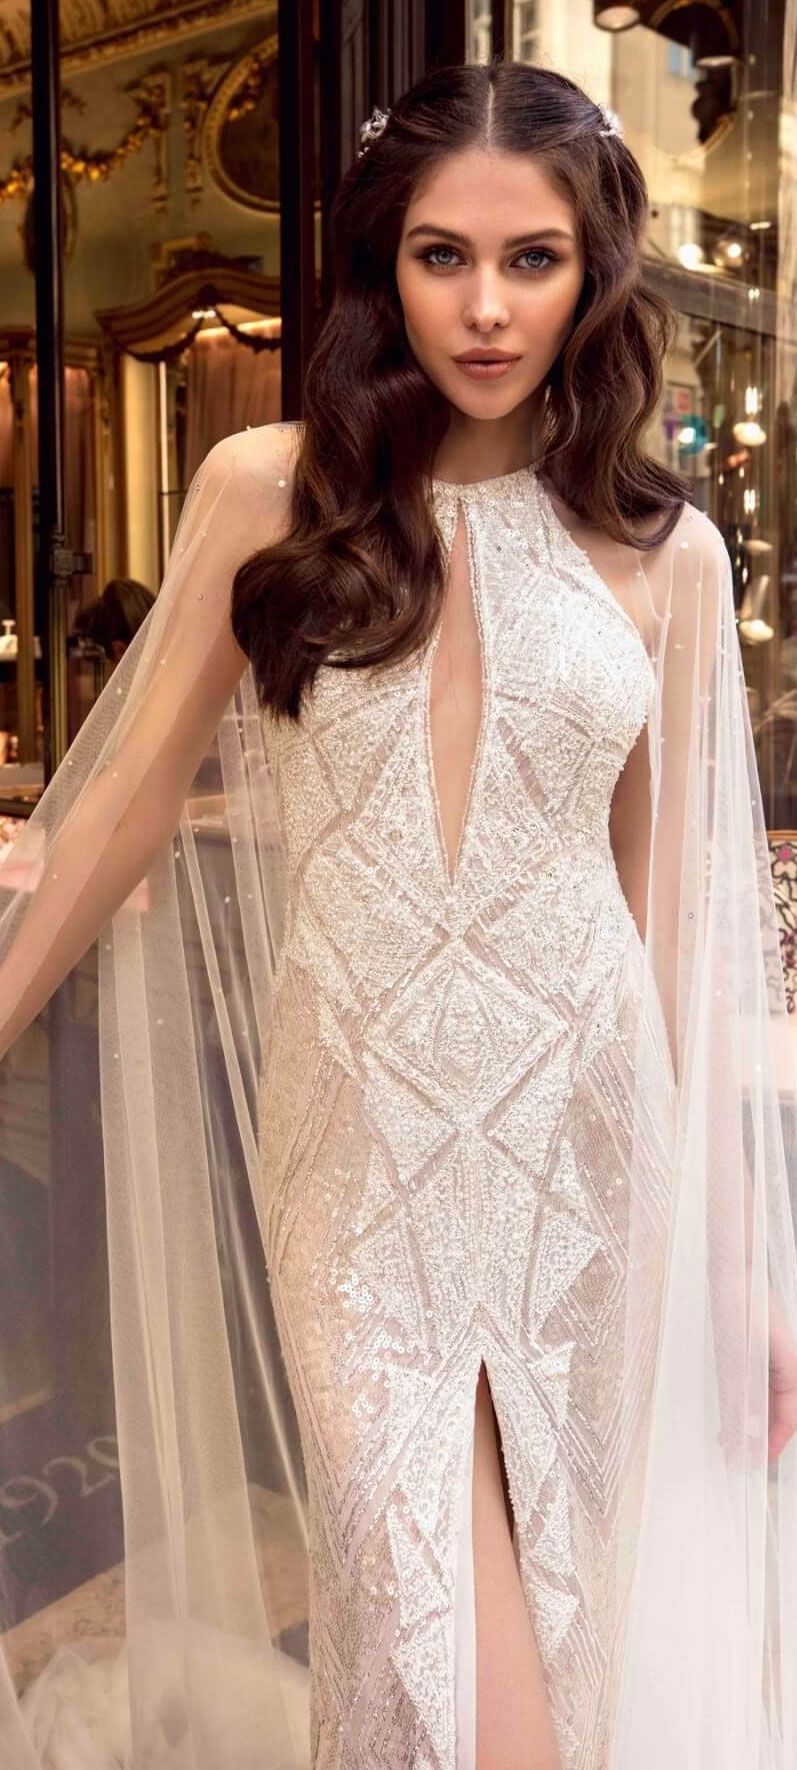 Beautiful innocentia wedding gowns exquisite wedding gowns